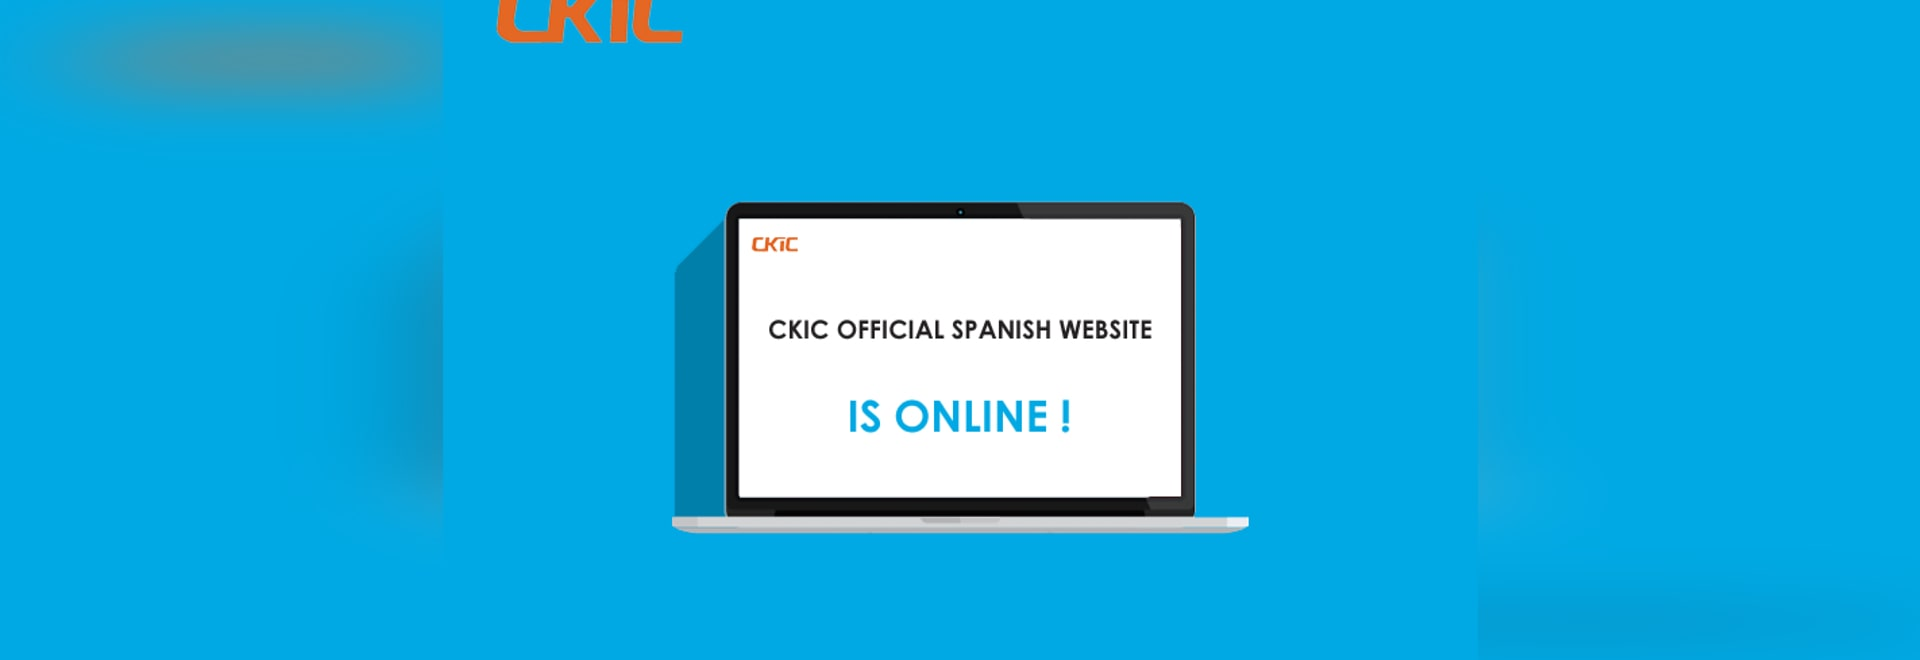 CKIC Official Spanish Website Launched